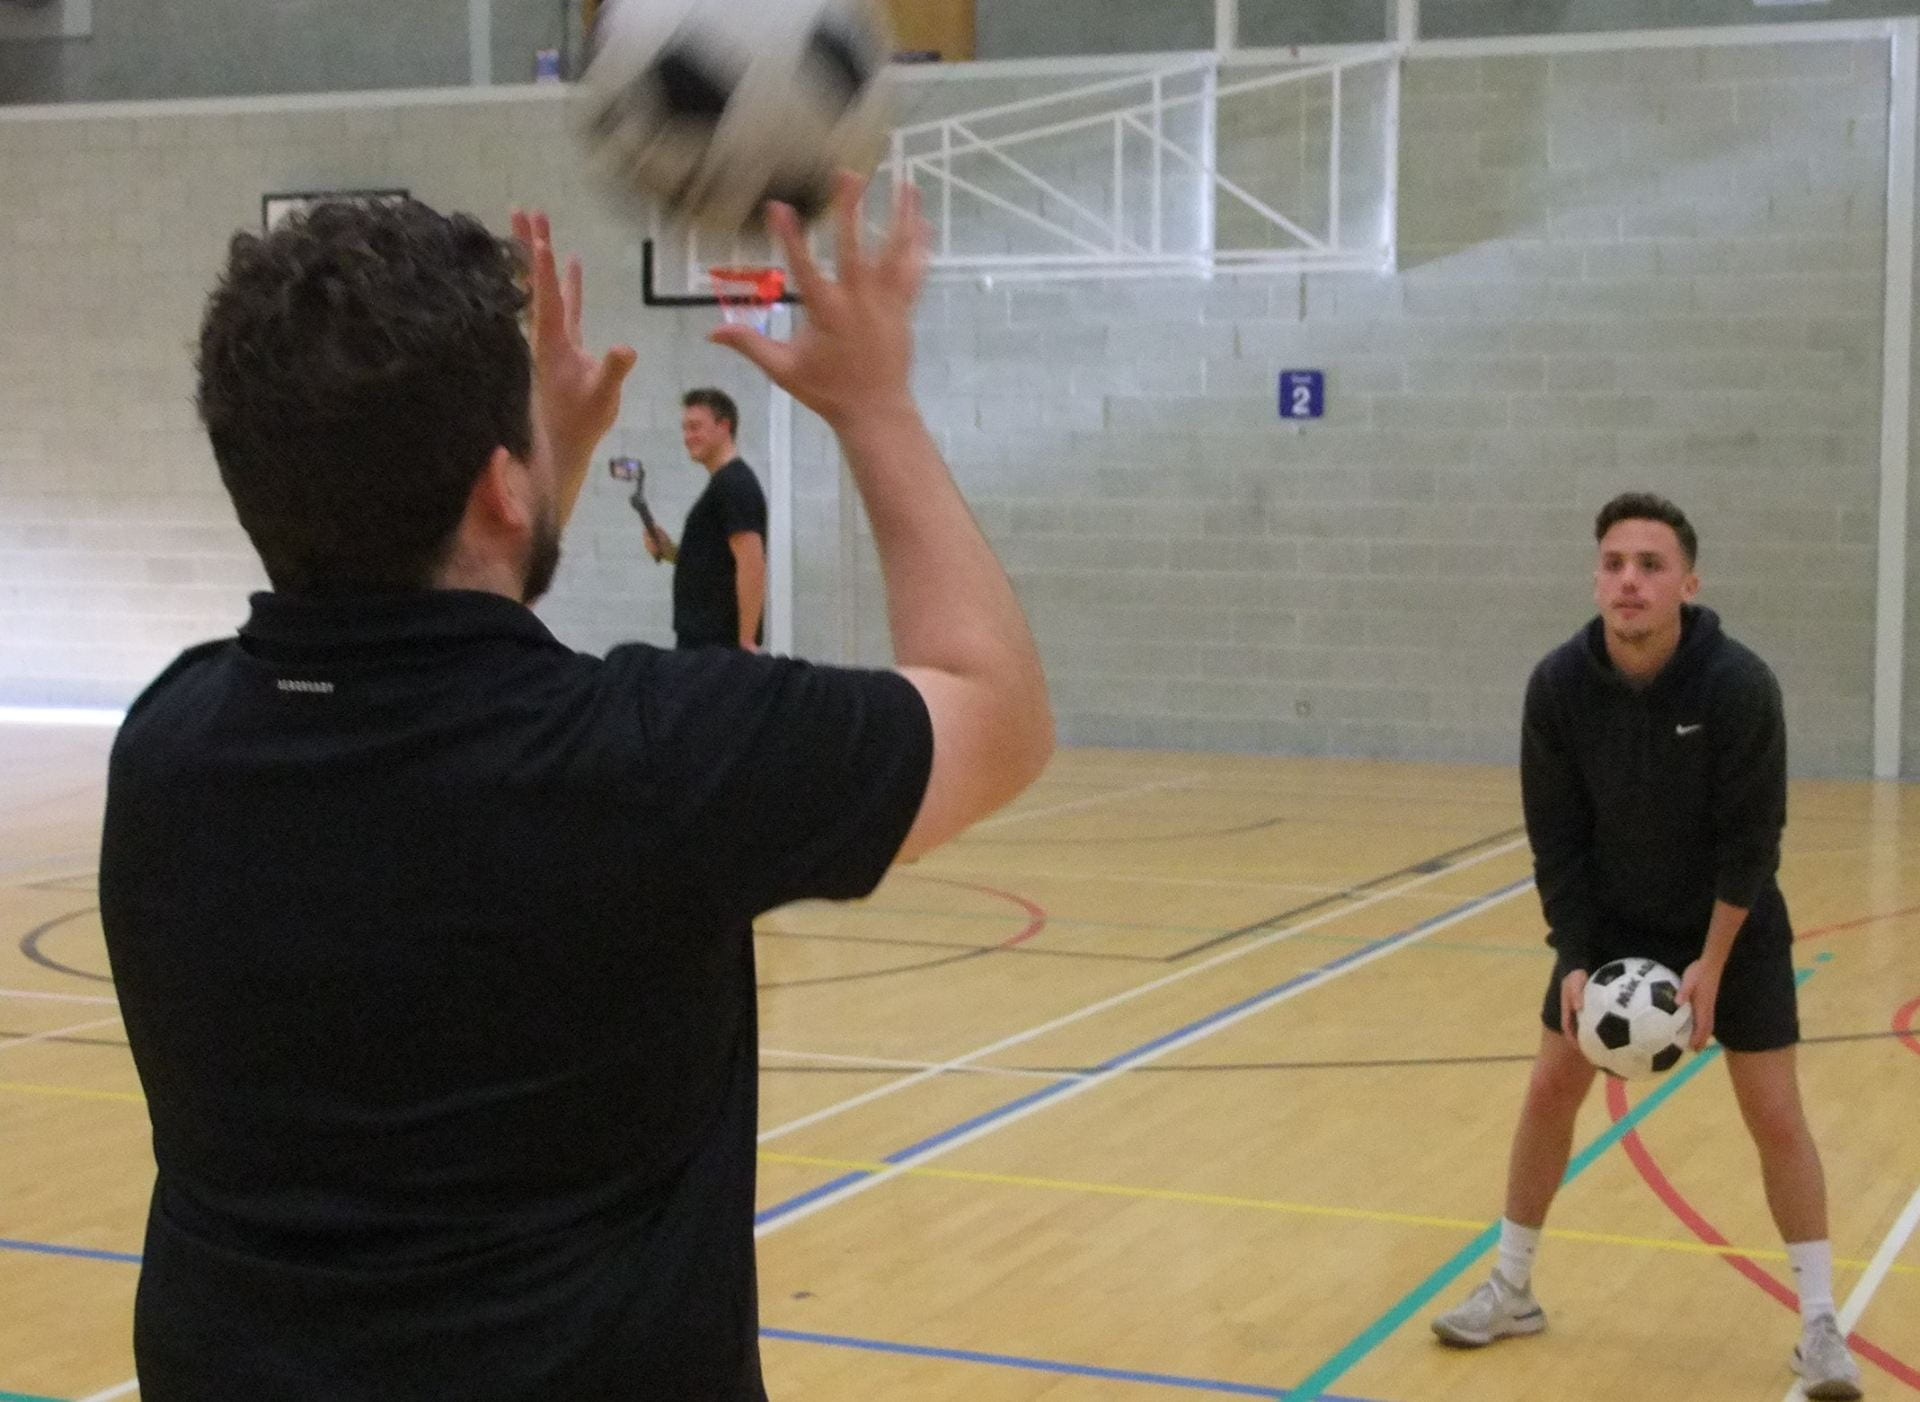 a student throwing a ball